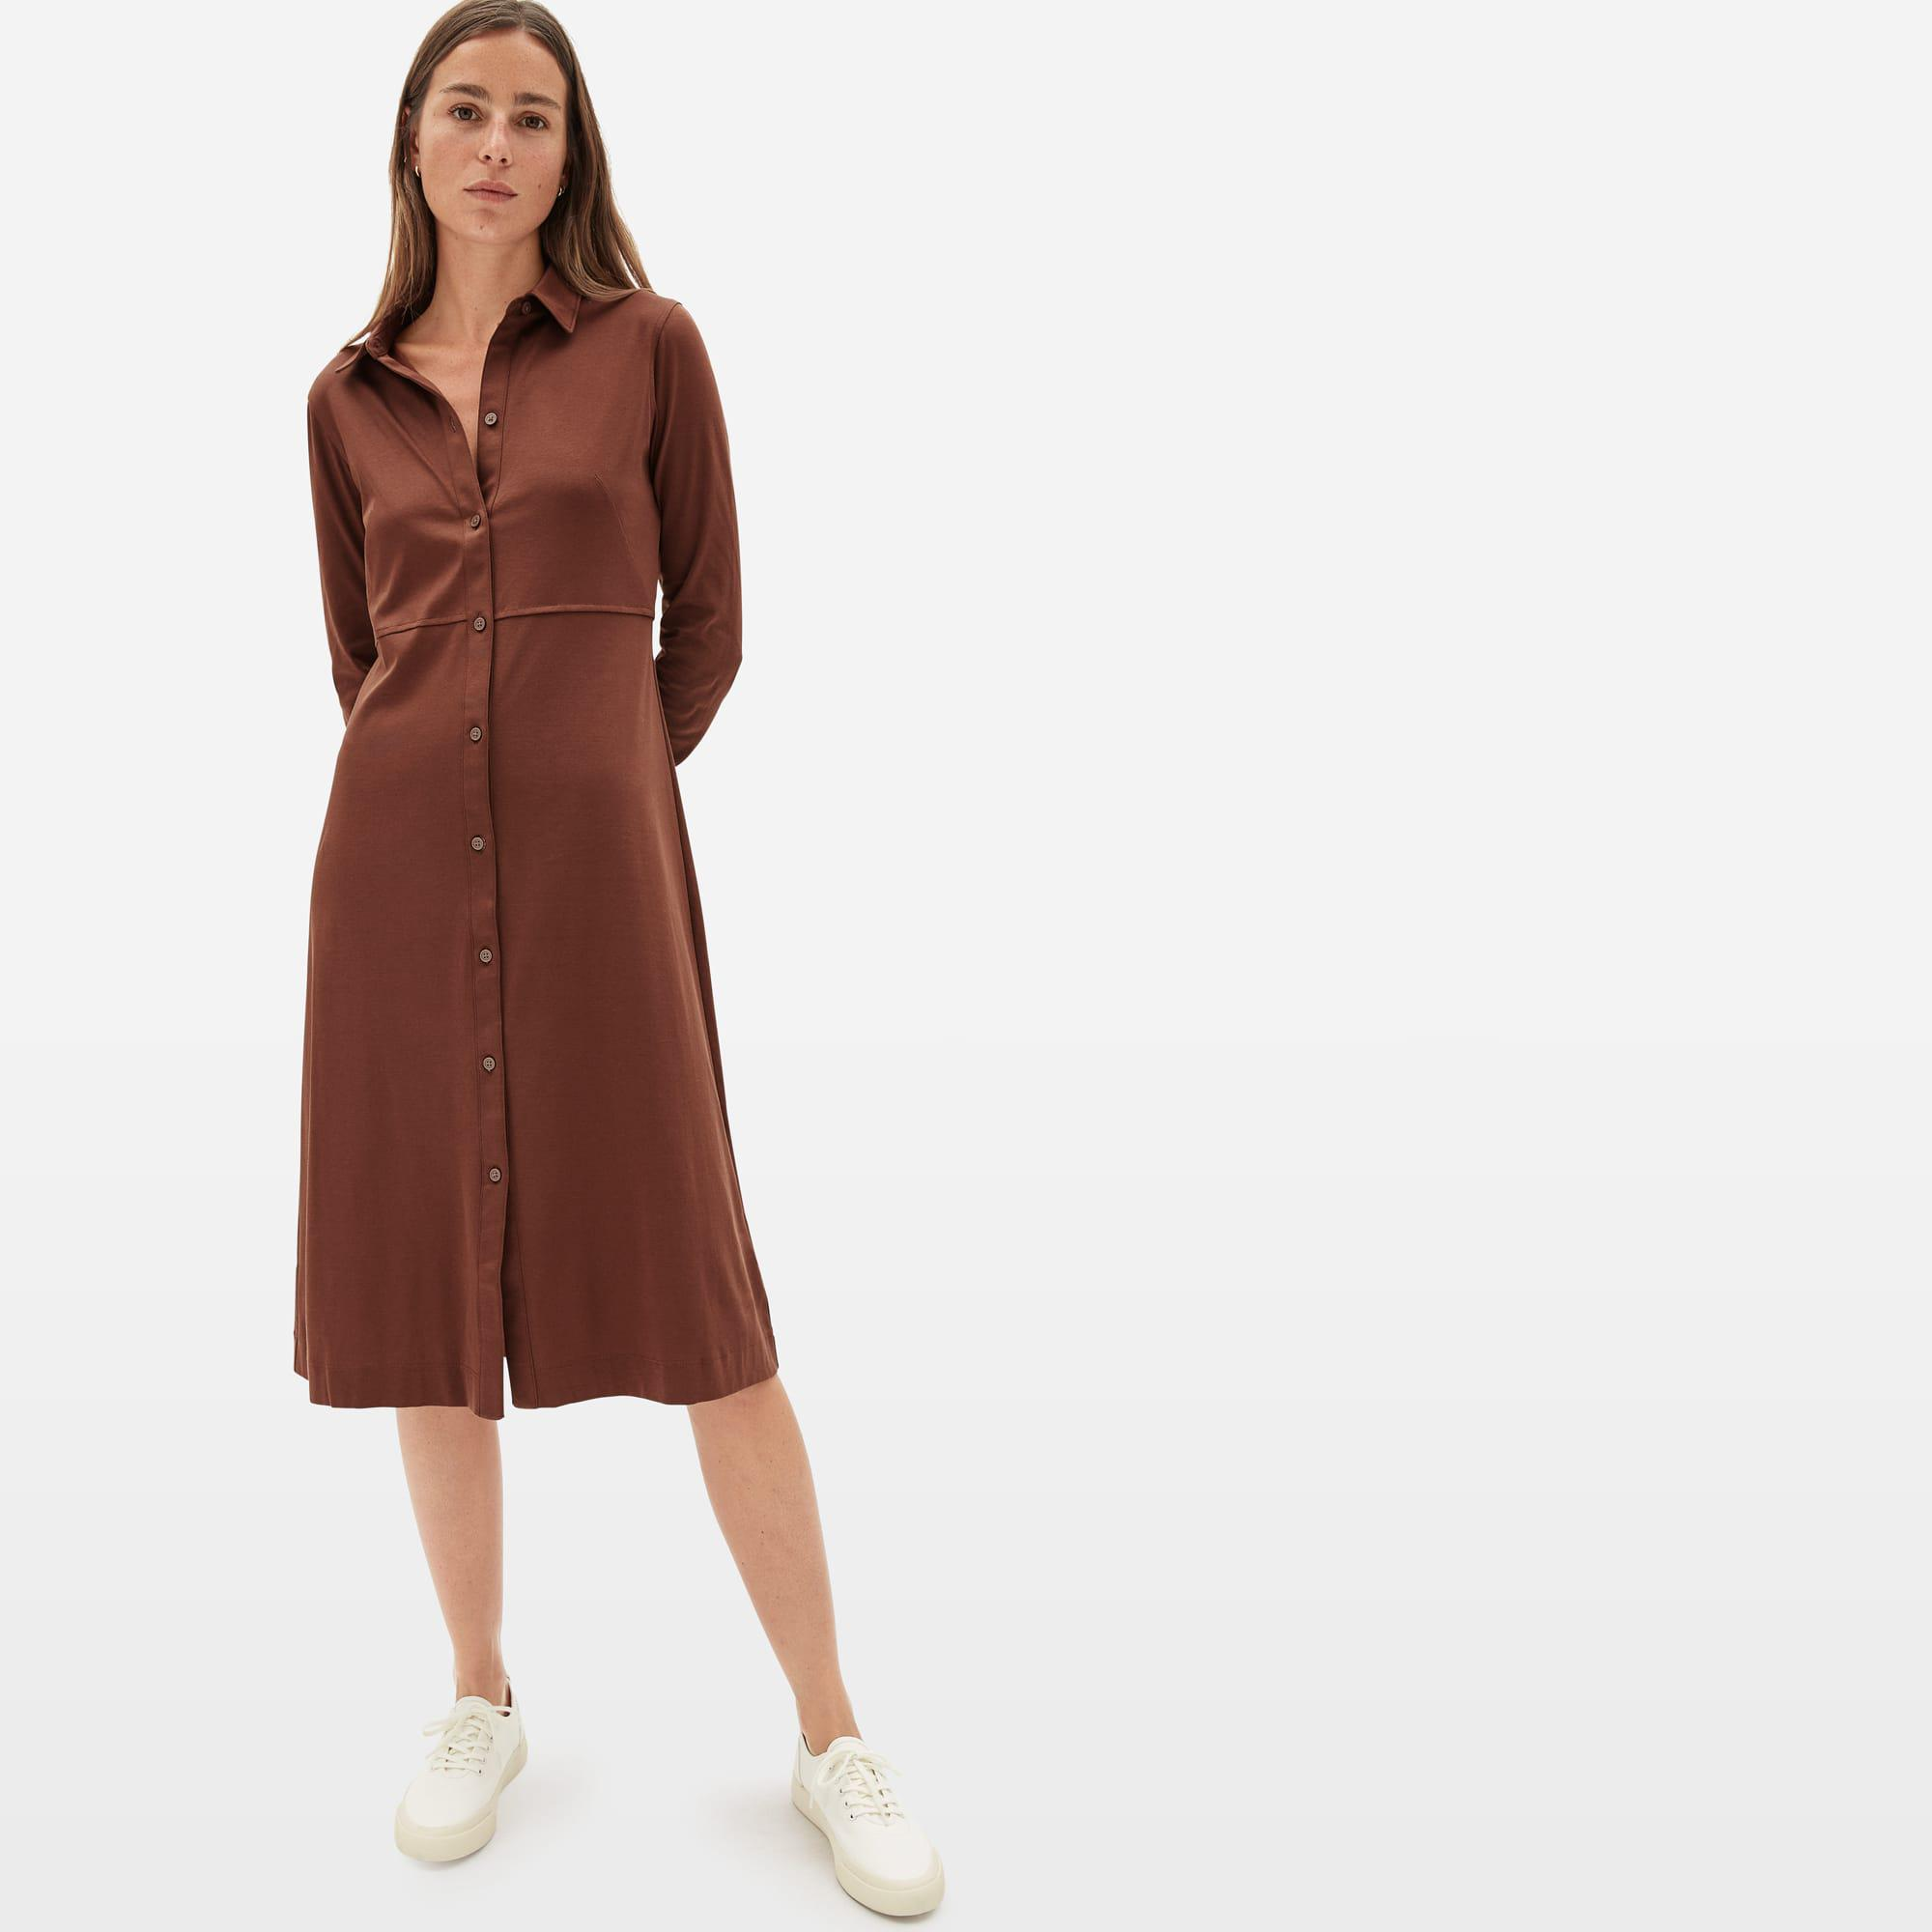 The Luxe Cotton Shirtdress